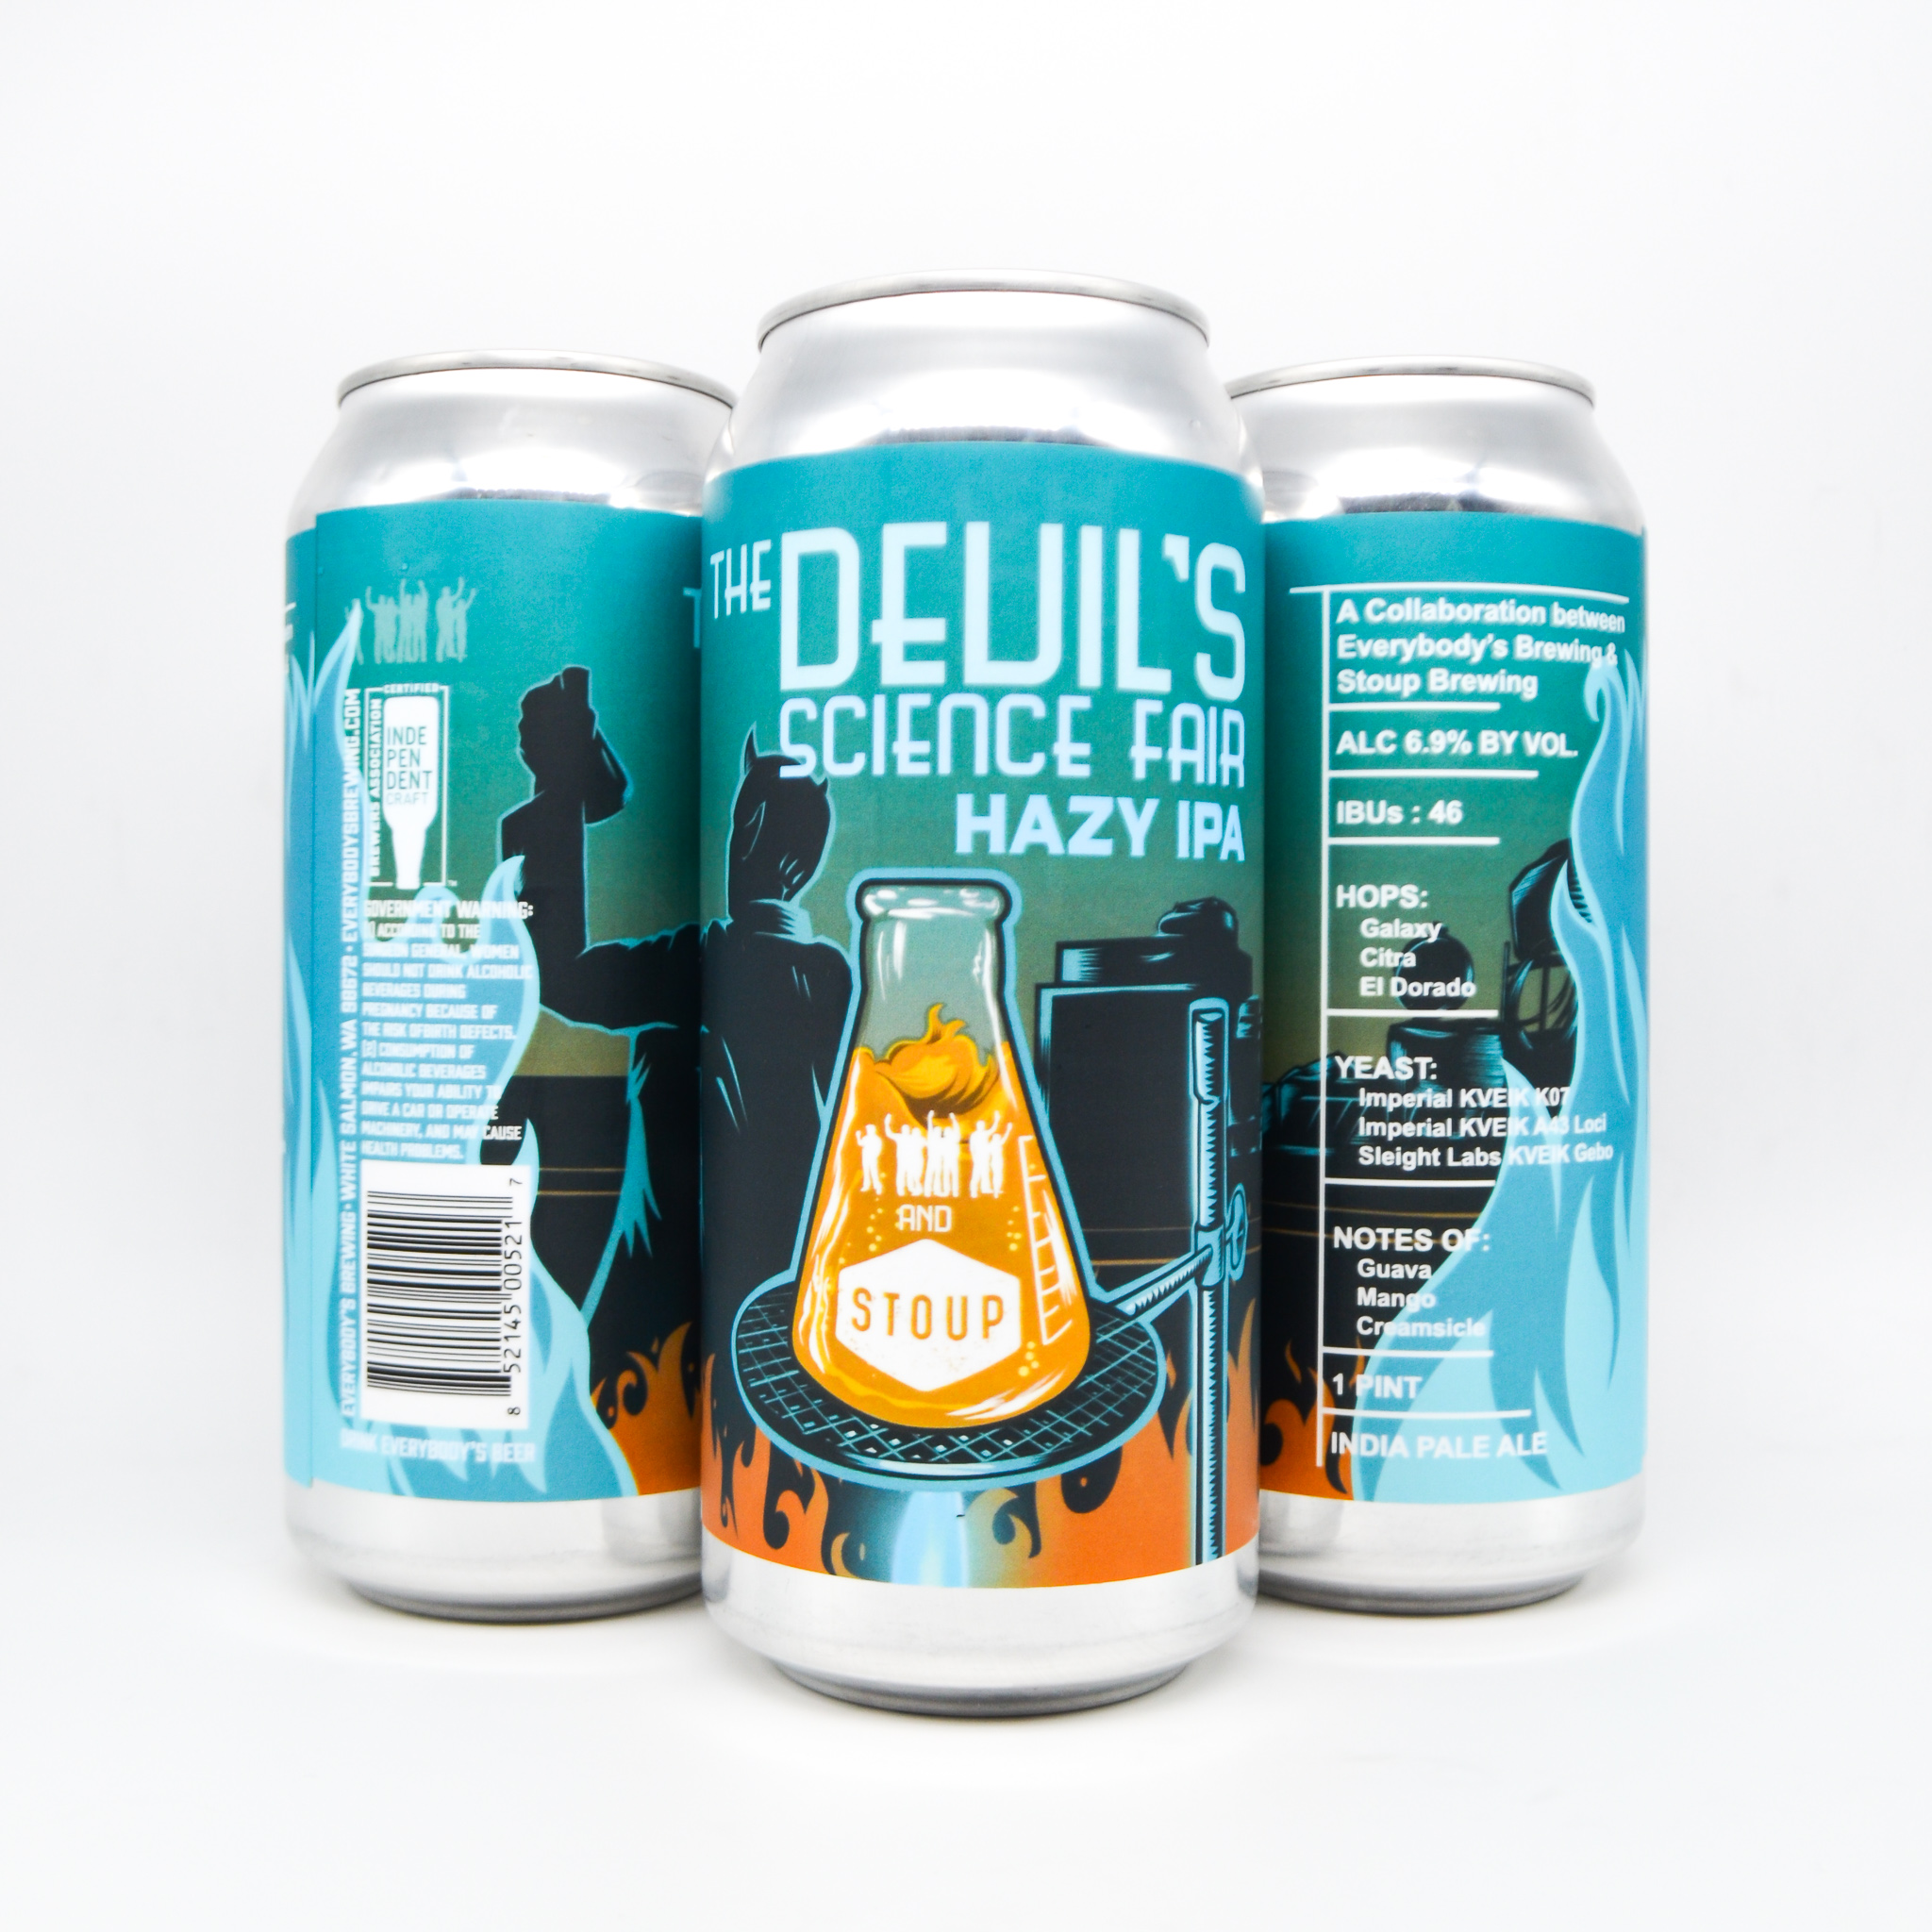 Everybody's Brewing and Stoup Brewing Collaborate on The Devil's Science Fair Hazy IPA